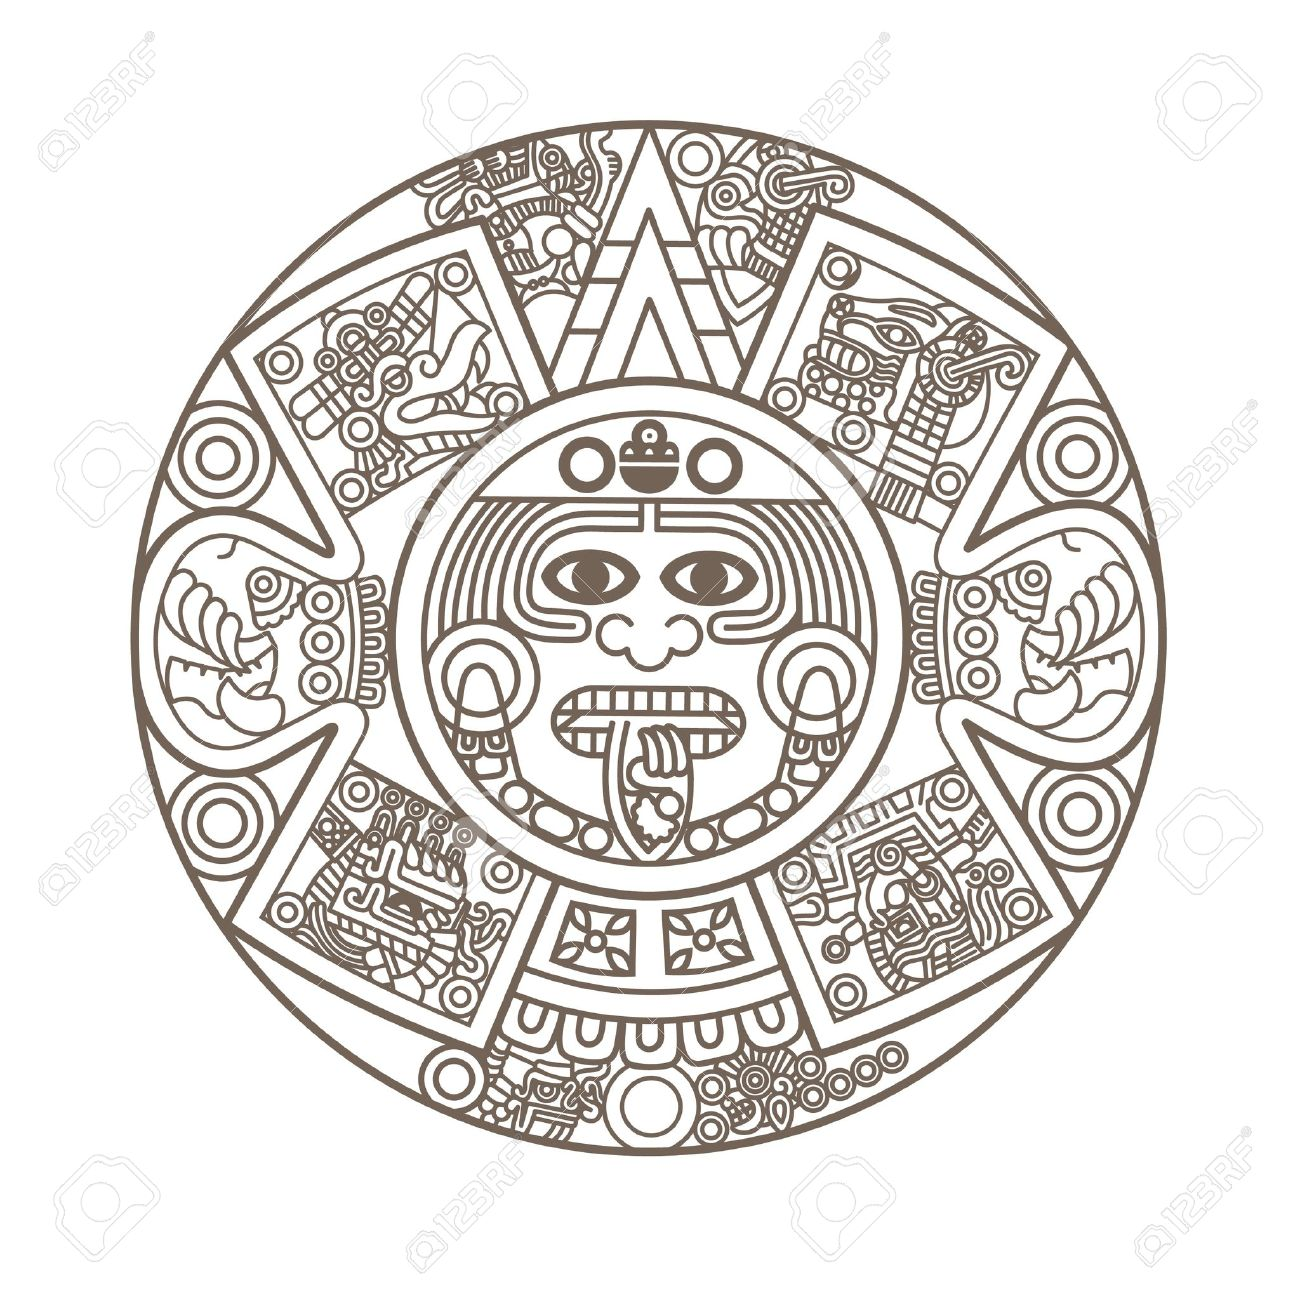 Aztec symbol for strength more information djekova antiquity stylized aztec aztec symbol for strength biocorpaavc Image collections